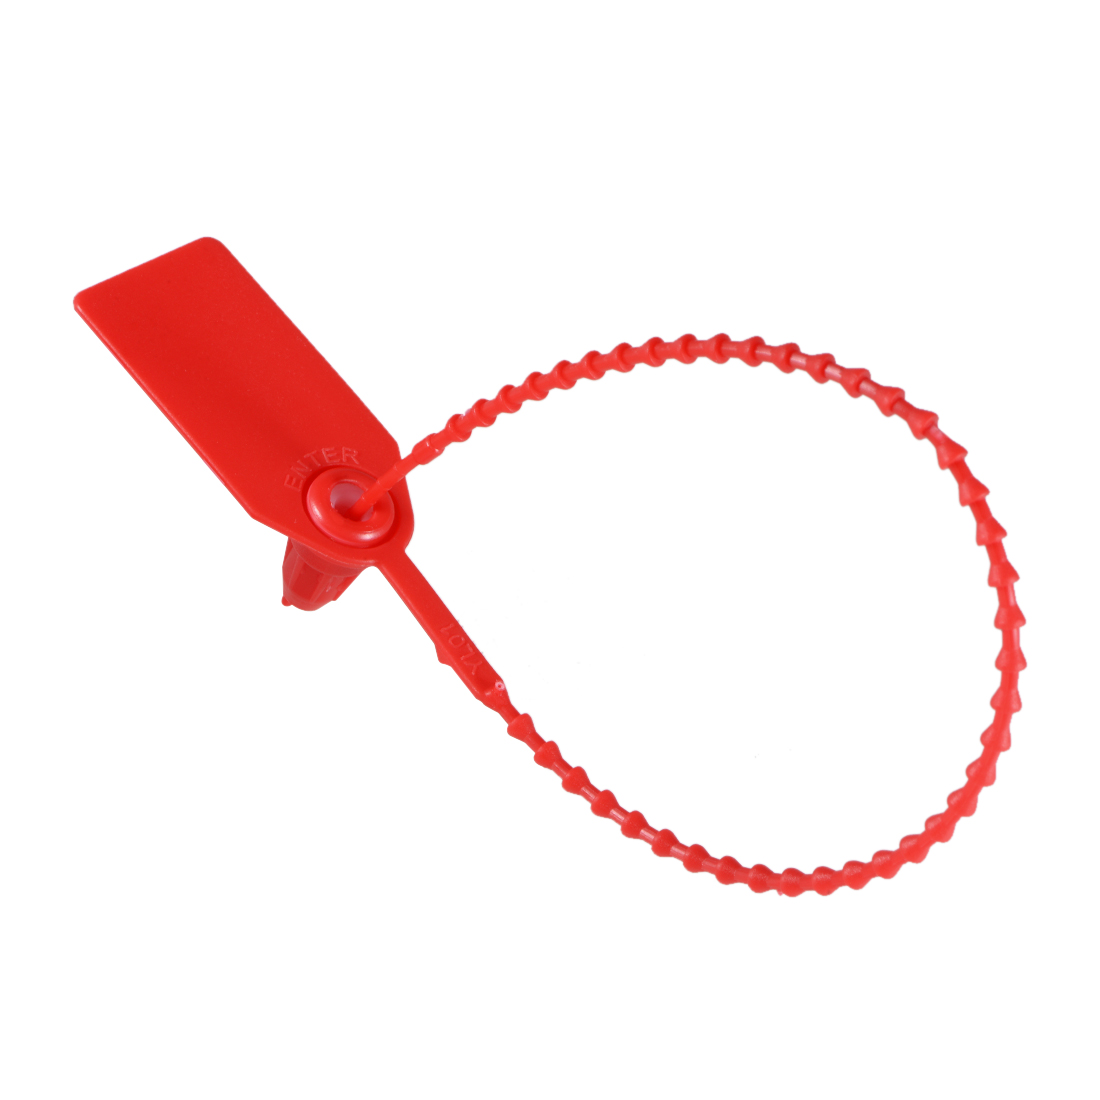 Plastic Zip Ties Seals Anti-Tamper 246mm Length, Red, Pack of 50